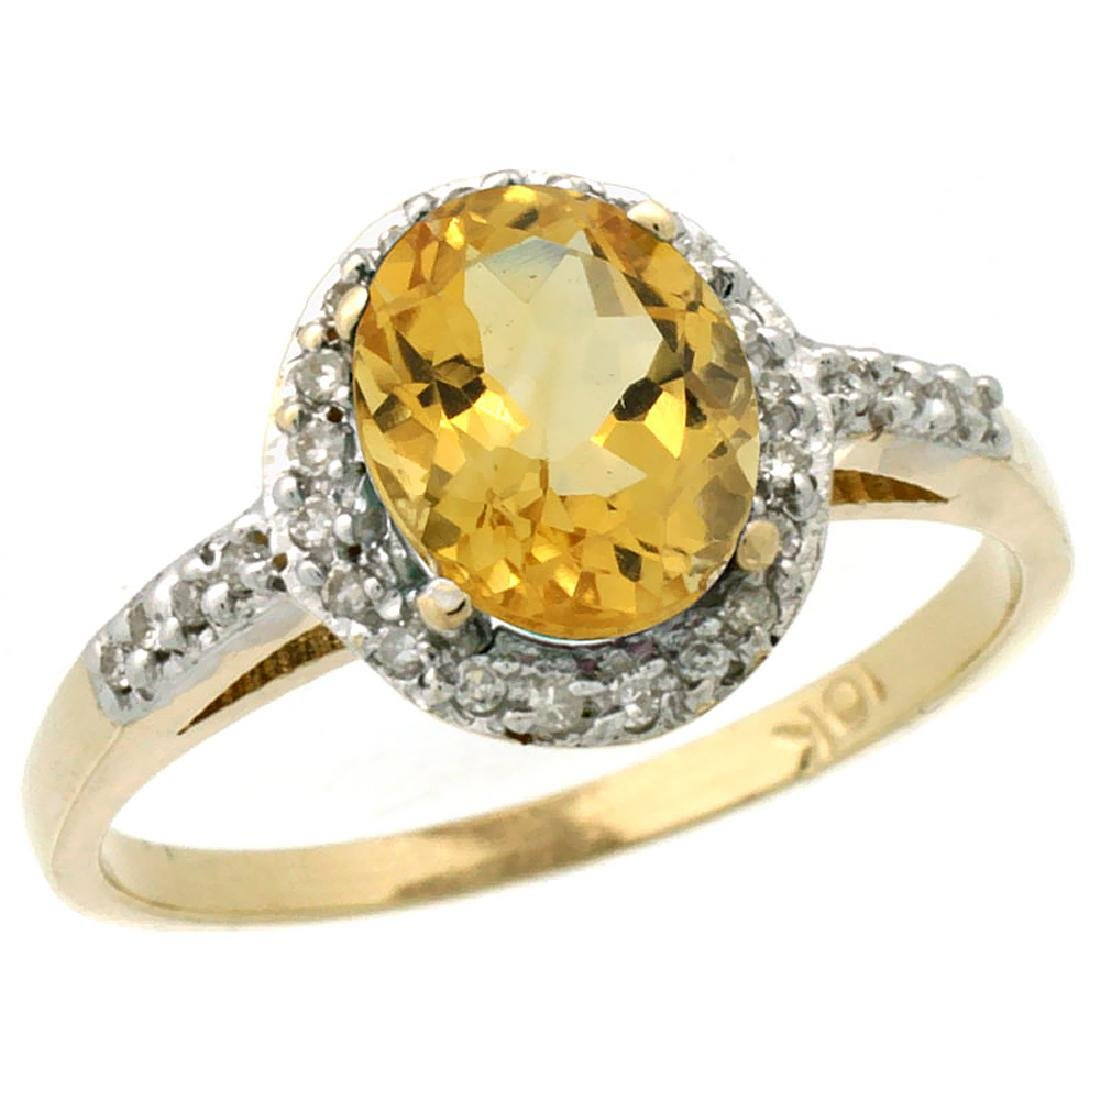 Natural 1.3 ctw Citrine & Diamond Engagement Ring 14K